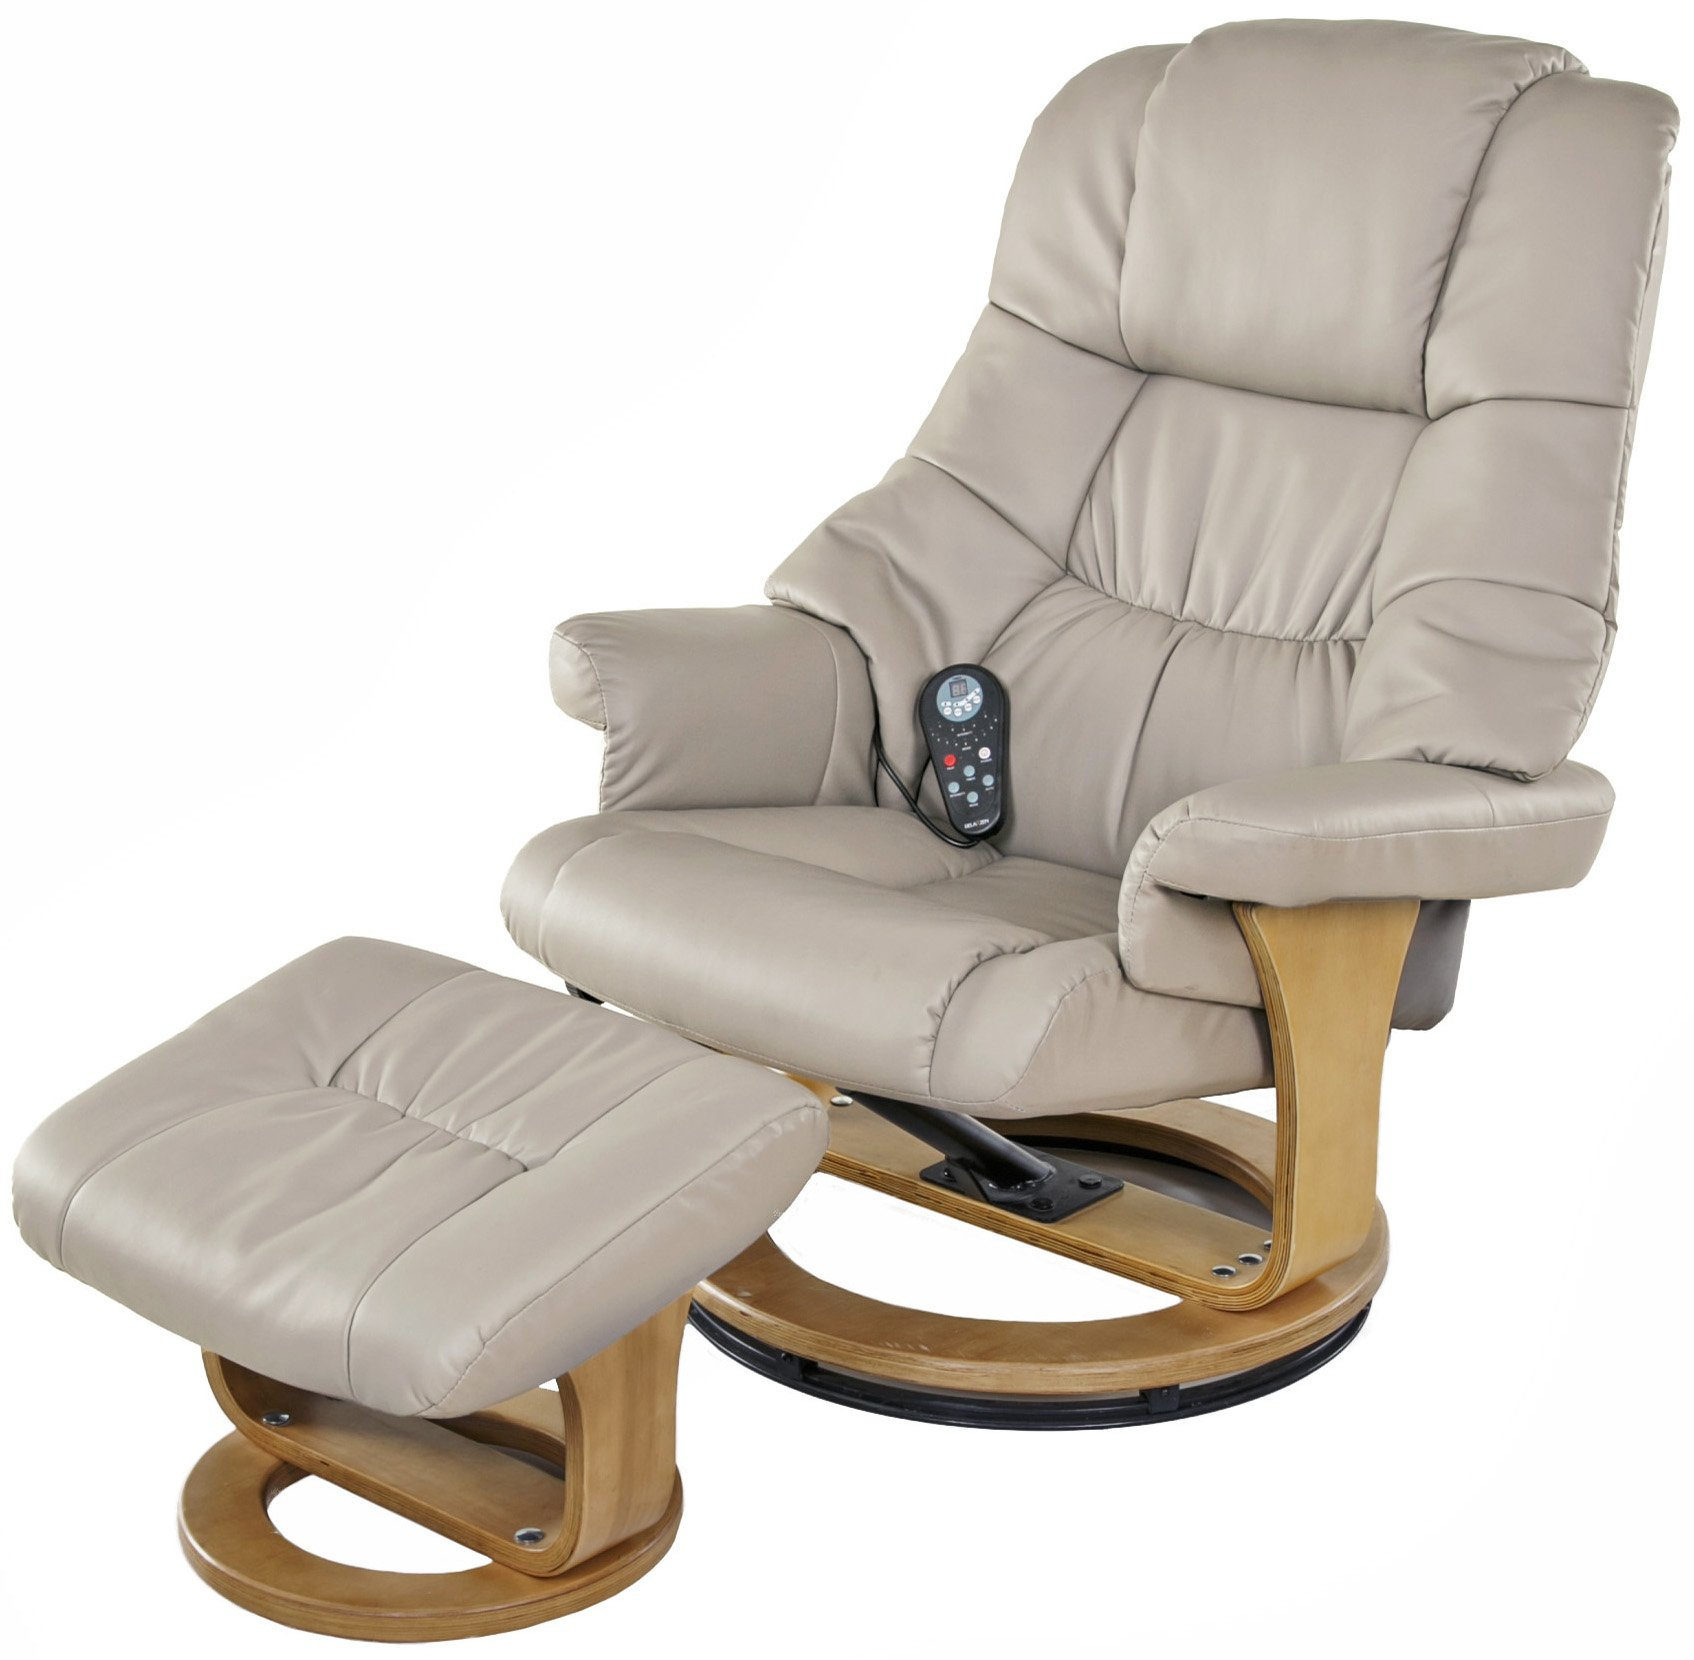 Relaxzen 8 Motor Massage Recliner with Heat and Ottoman, Beige and Wood Base by Relaxzen